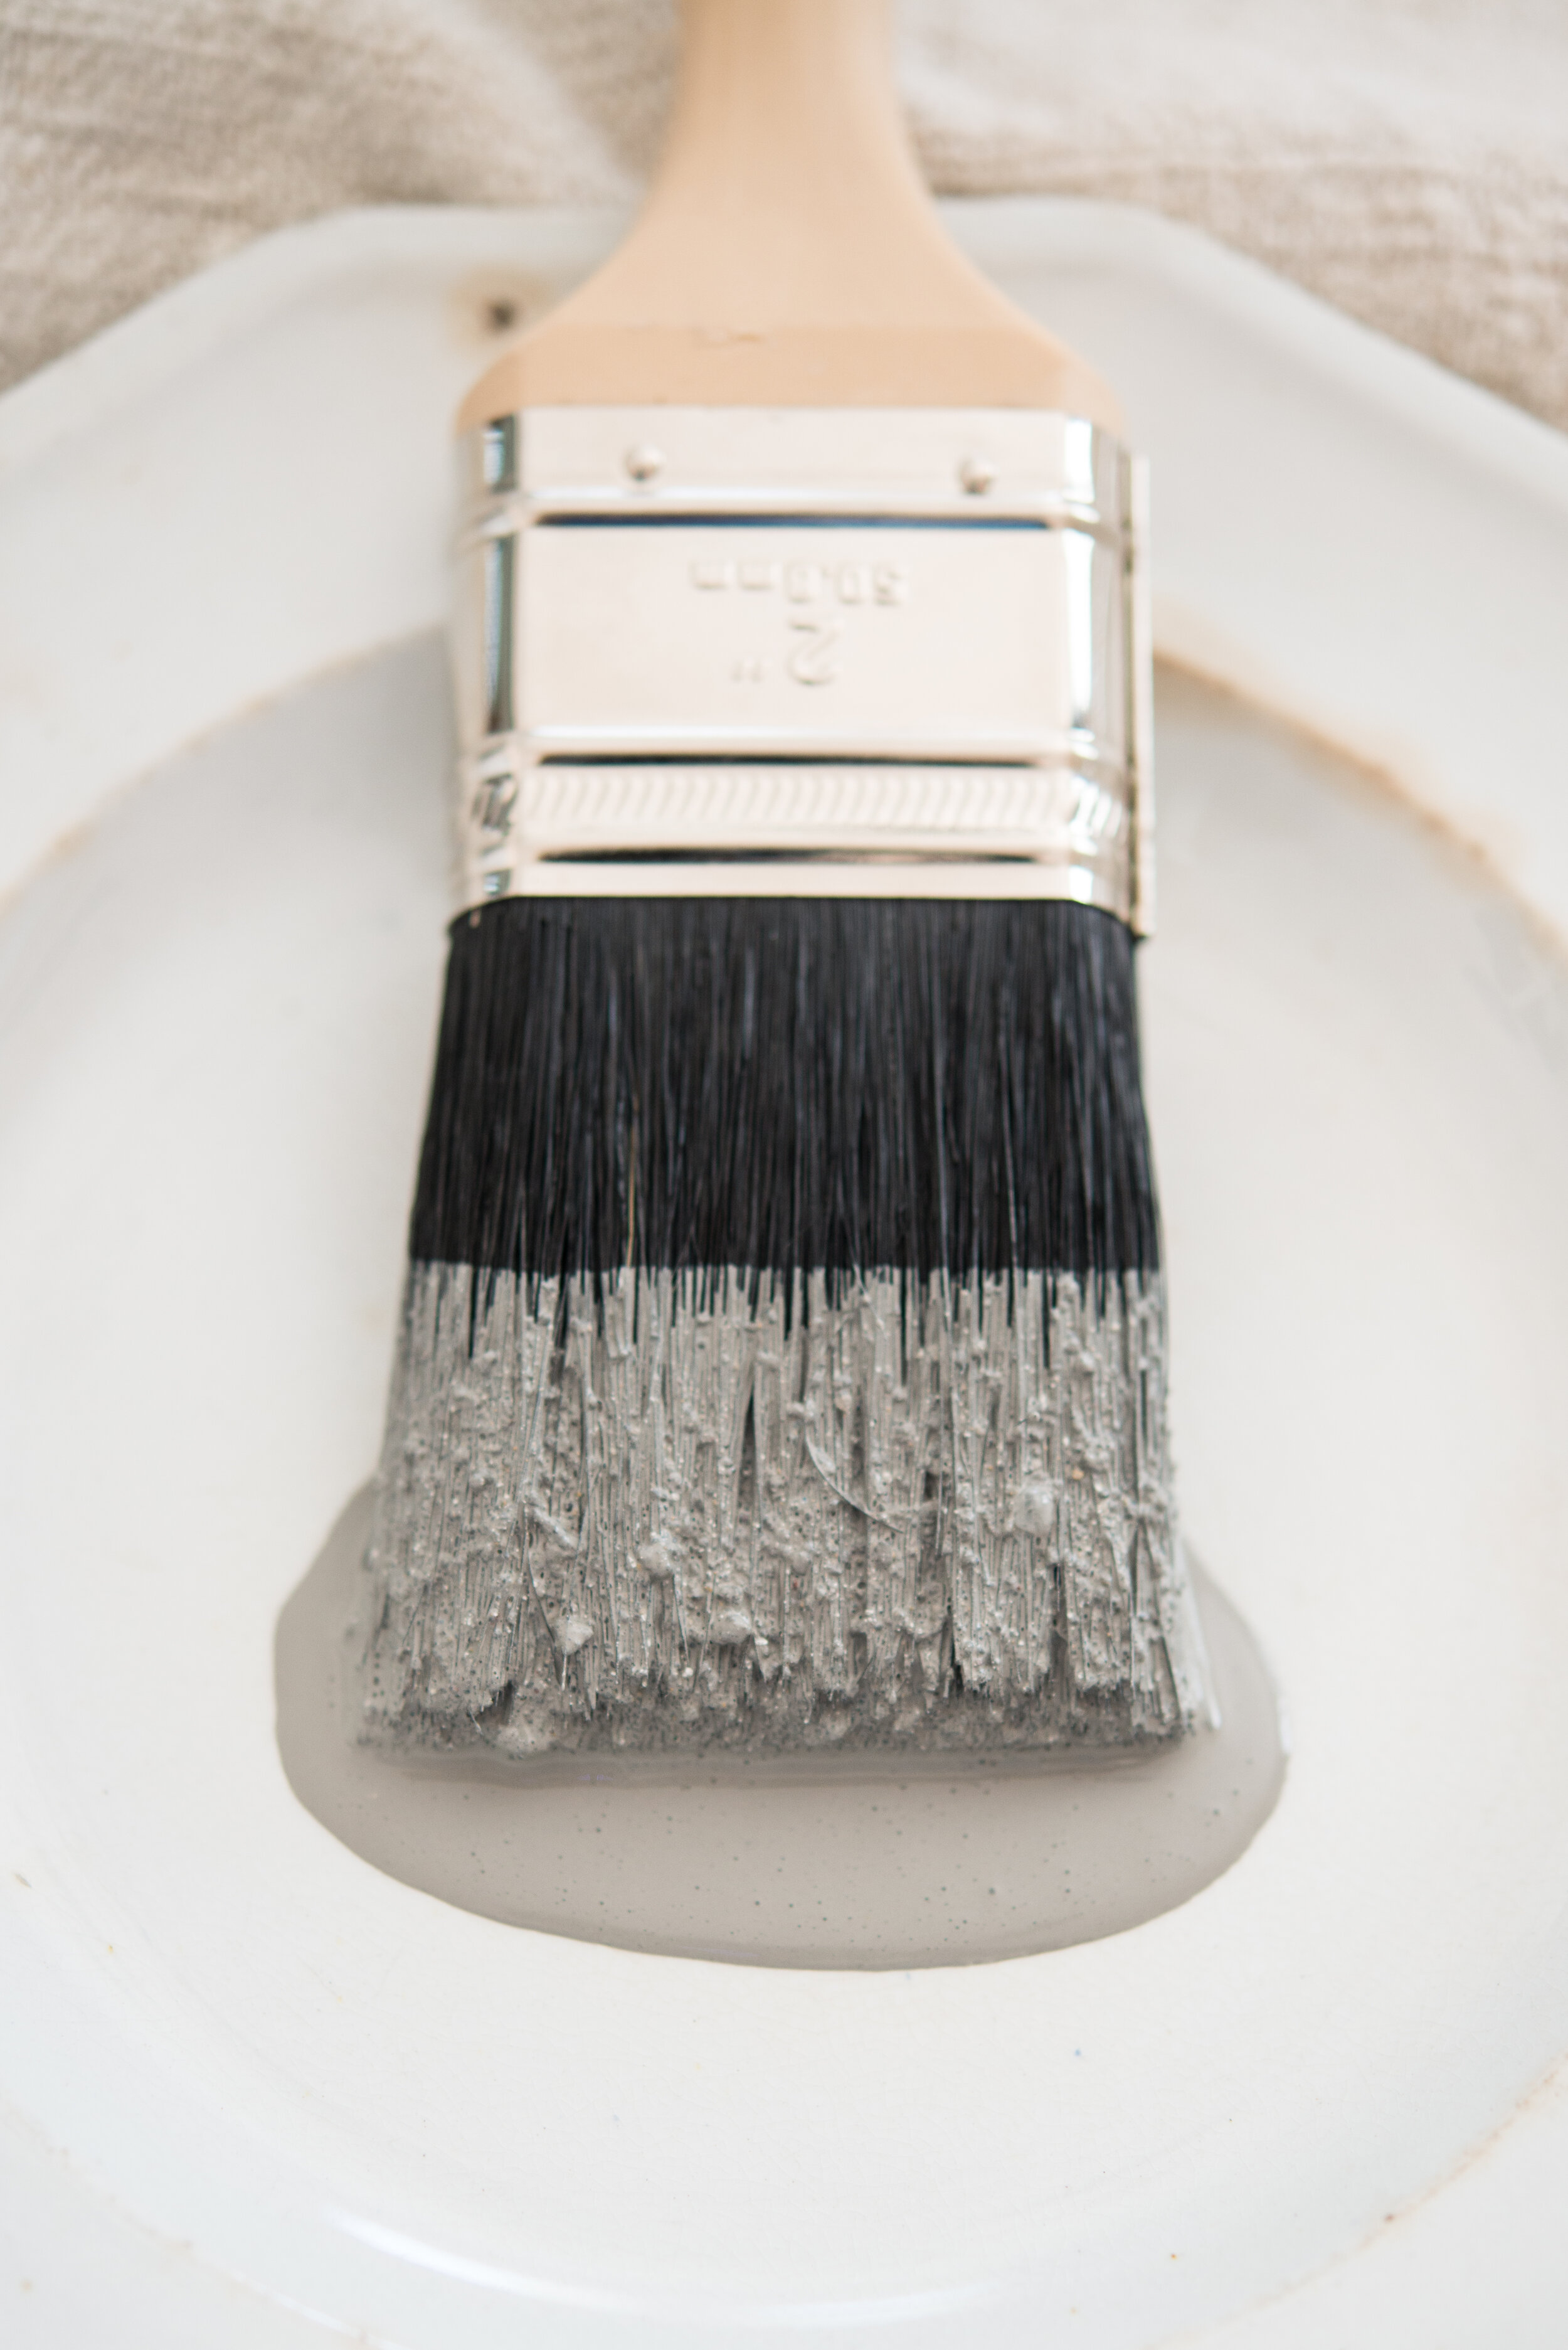 Miss Mustard Seed's Milk Paint in the color Trophy on a brush